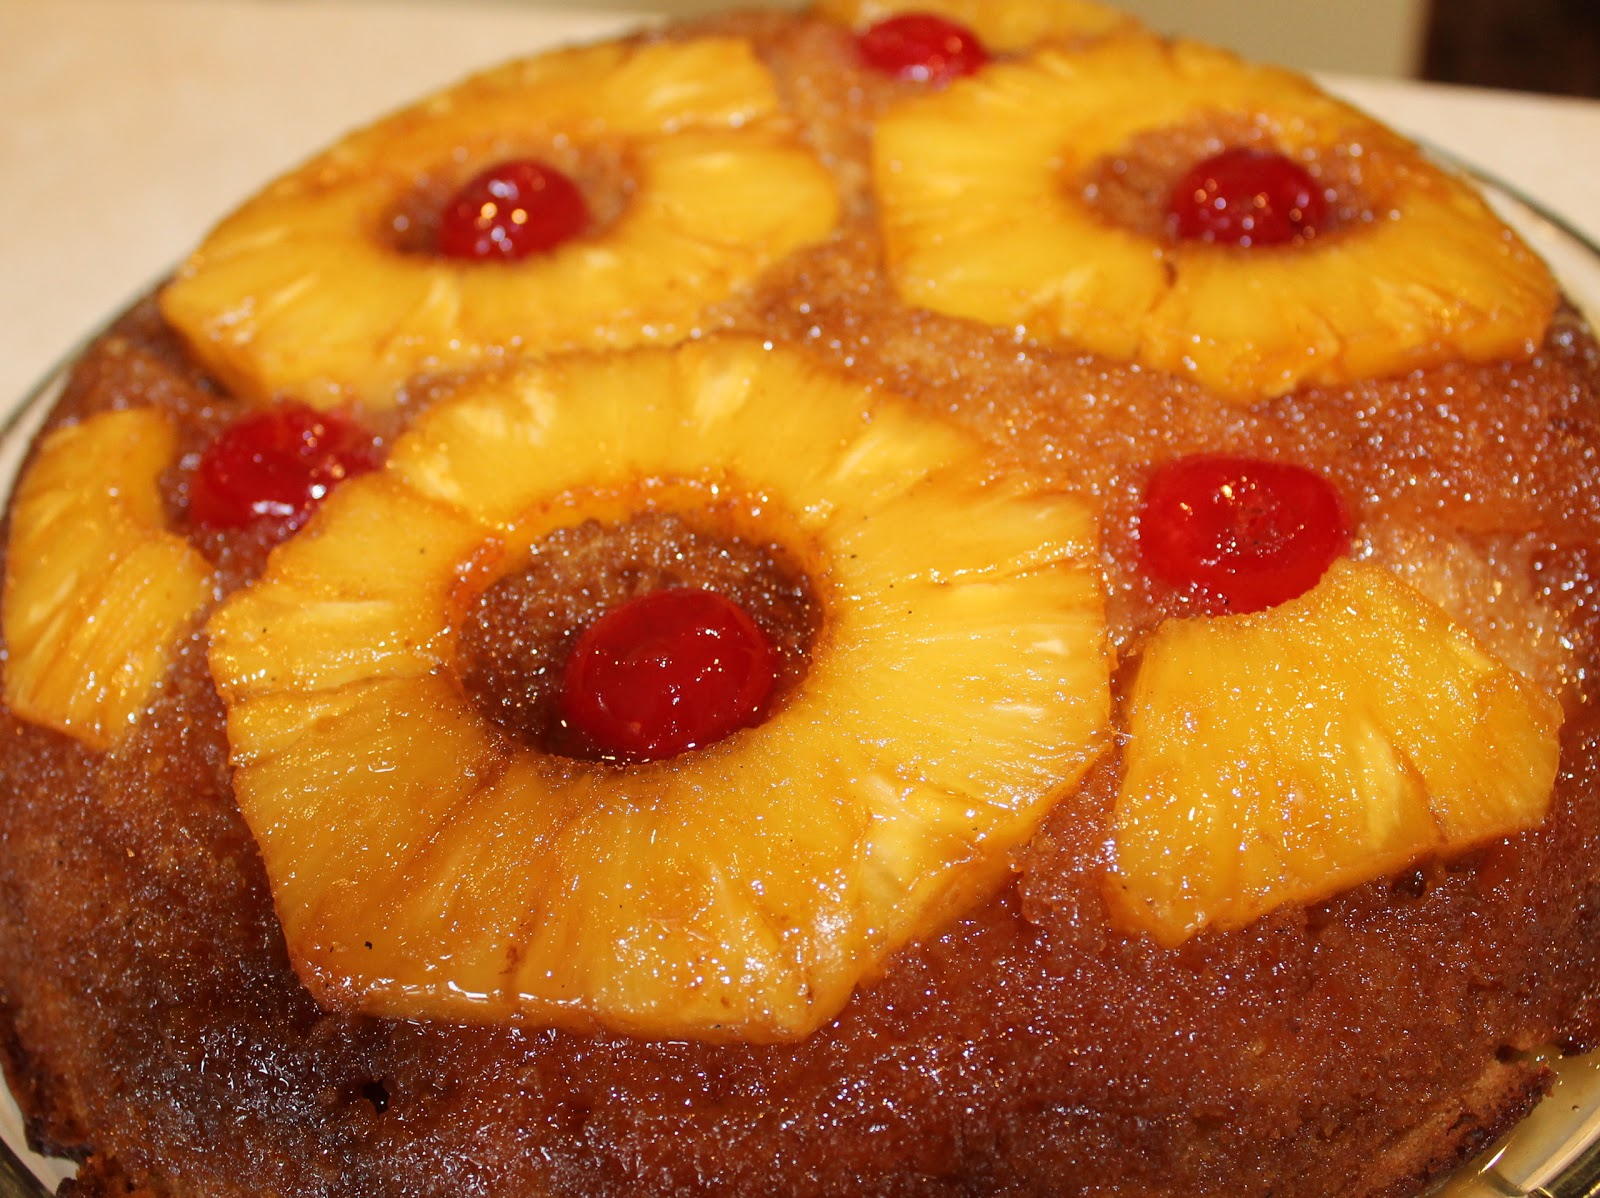 Skillet Pineapple Upside Down Cake - Just One Donna!